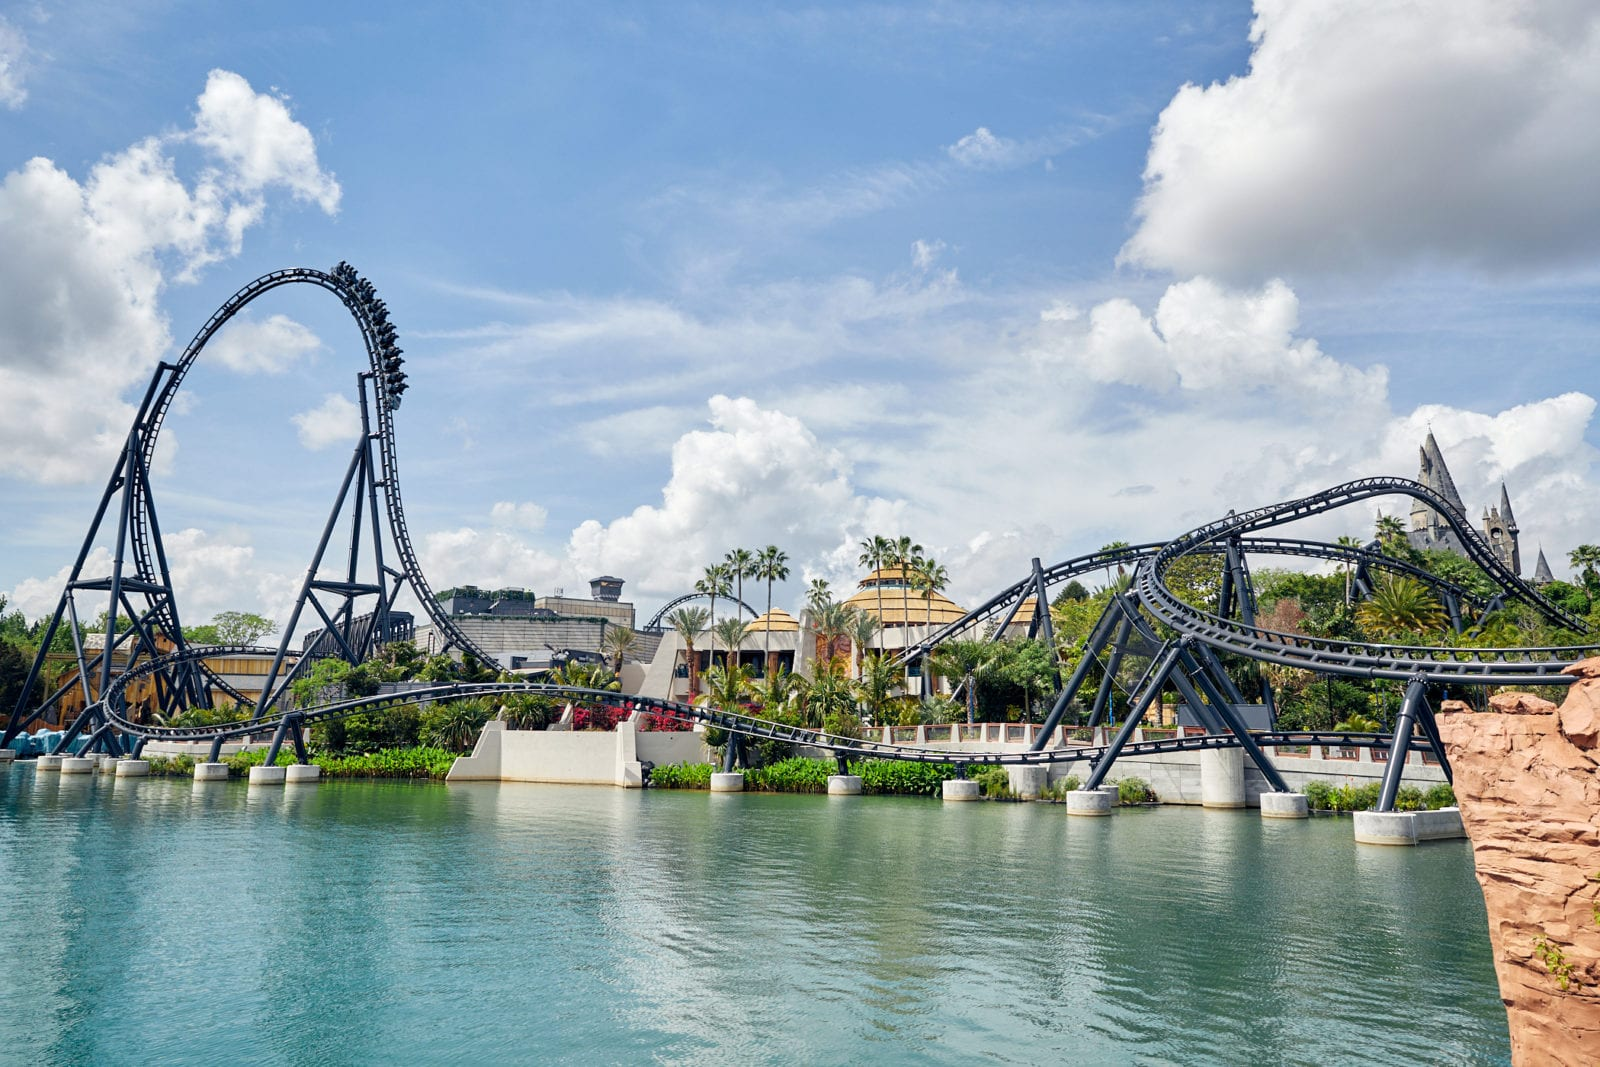 Jurassic World Velocicoaster at Islands of Adventure (Photo: Universal Orlando Resort)